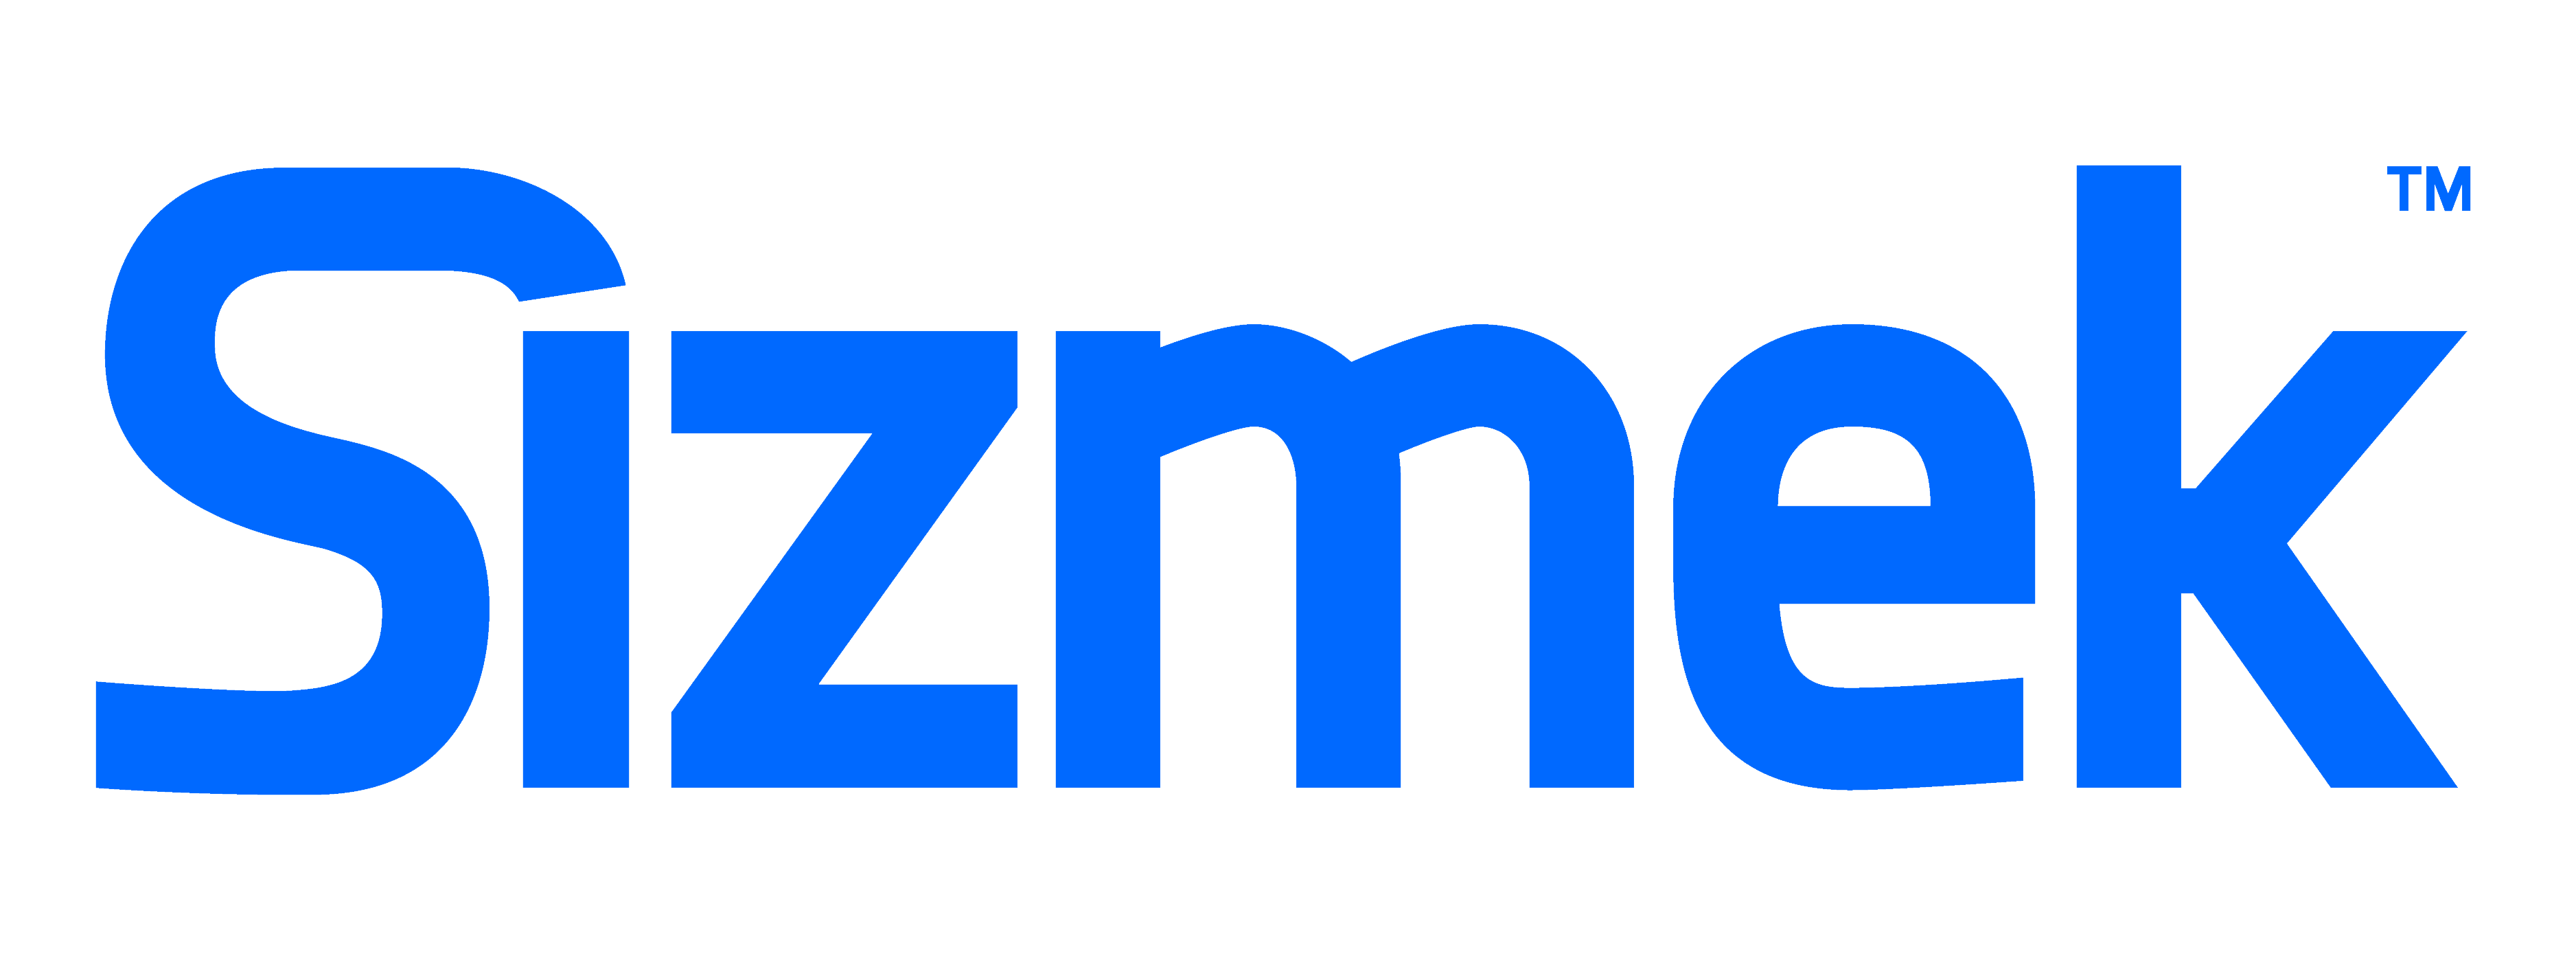 Awesome sizmek-consultants Experts Available For Project Work Right Now.